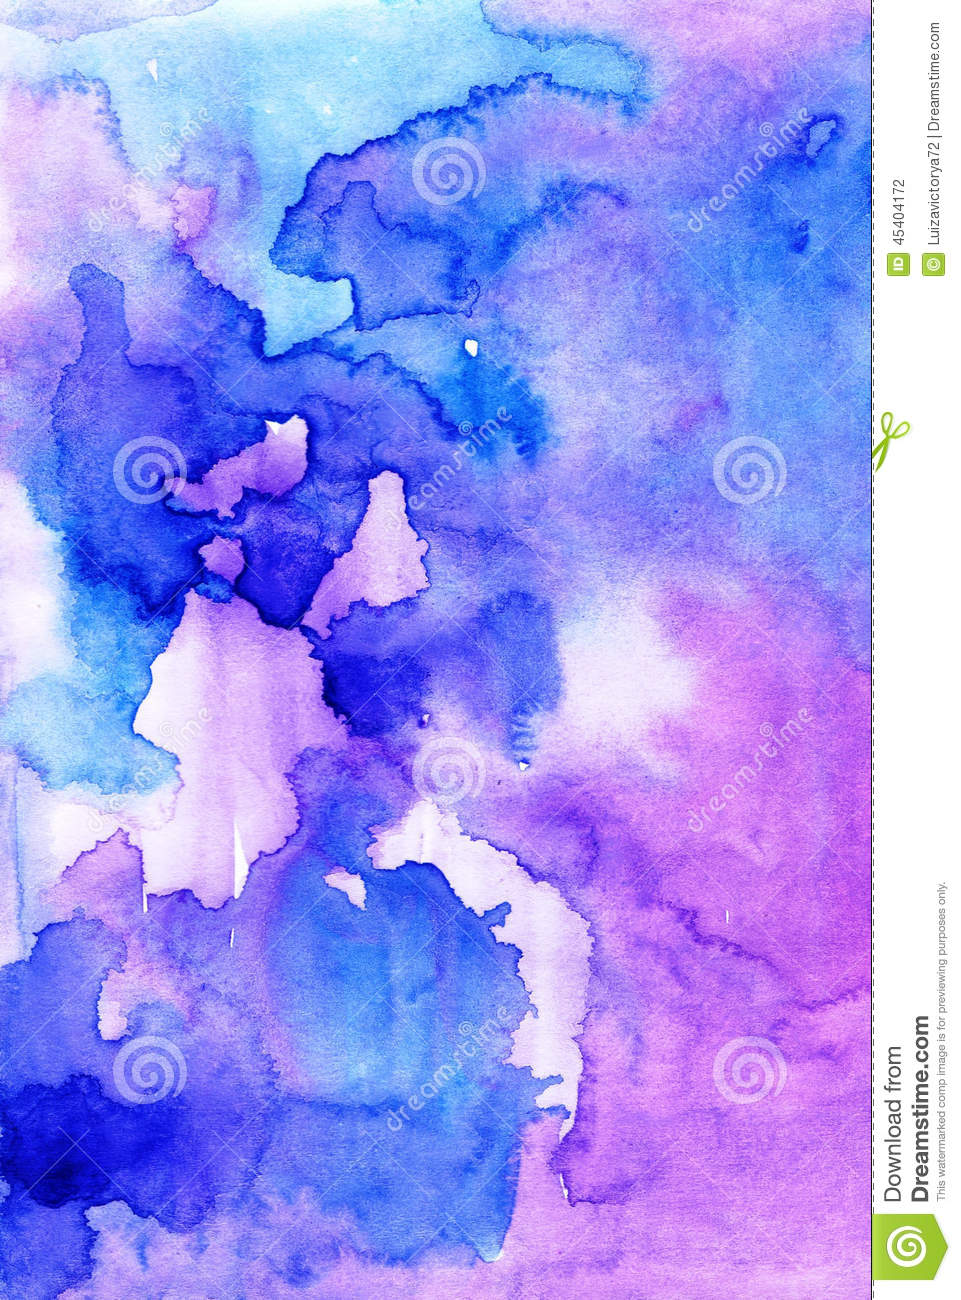 Wash drawing colorful watercolour abstract background for for Different wallpaper designs